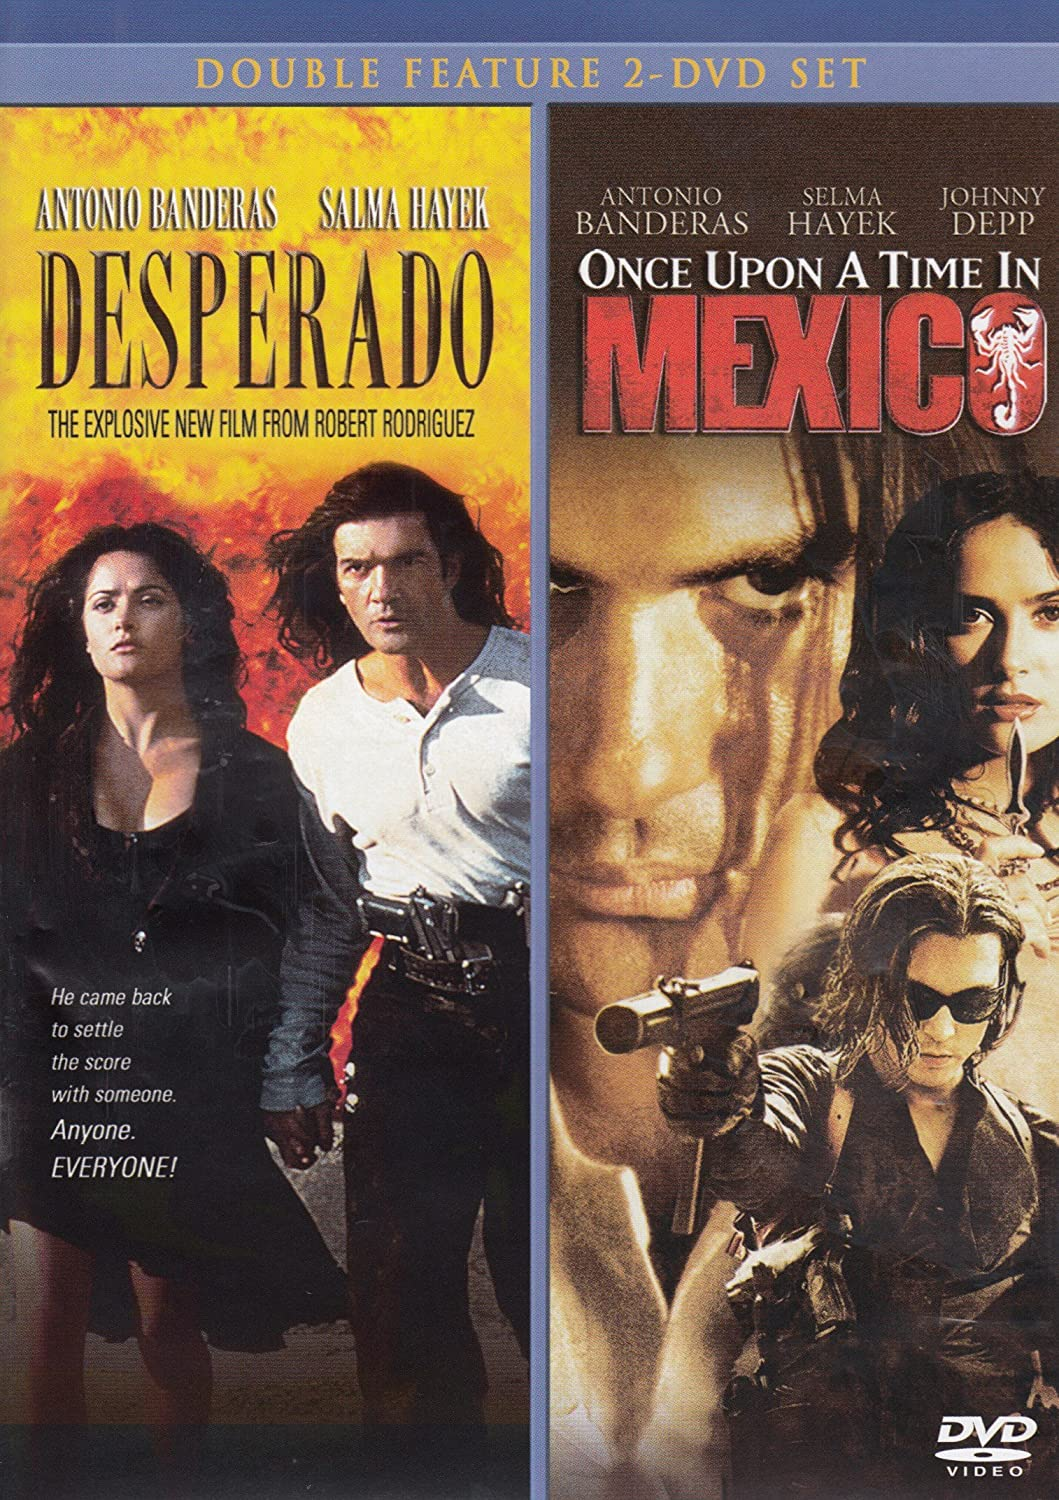 Amazon Com Desperado Once Upon A Time In Mexico Johnny Depp Antonio Banderas Salma Hayek Willem Dafoe Mickey Rourke Robert Rodriguez Movies Tv